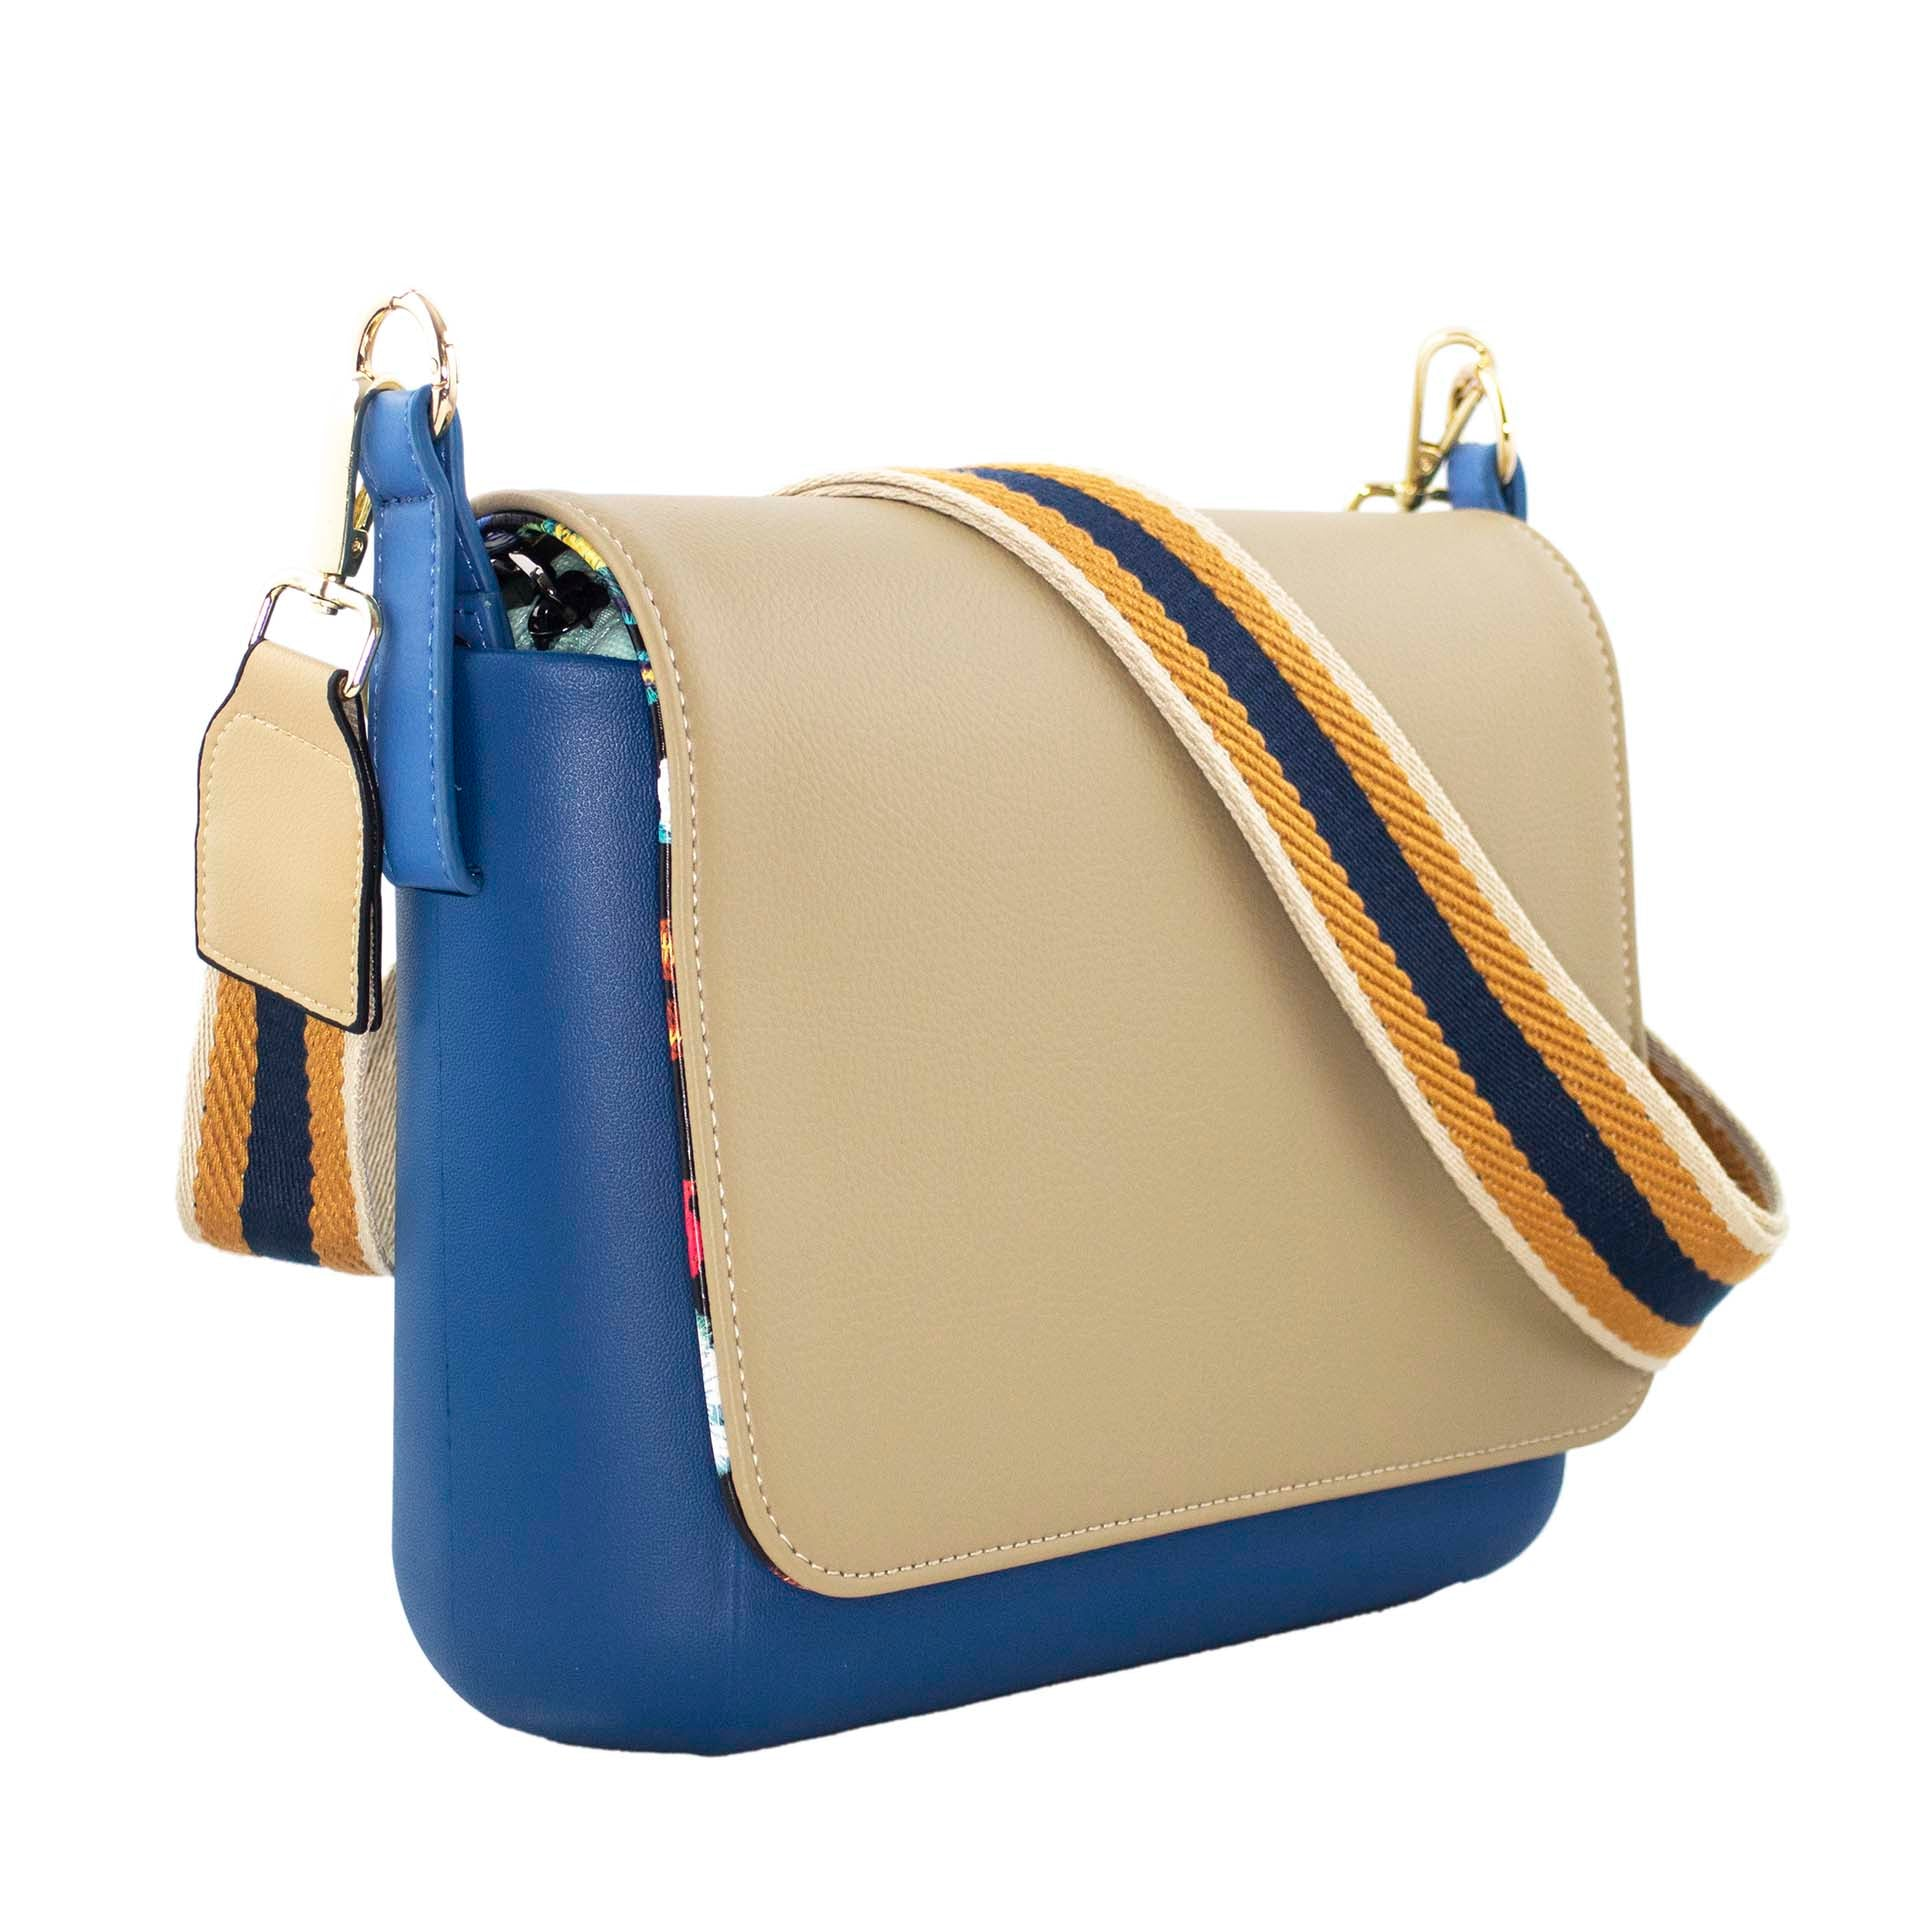 Beige and blue crossbody purse with interchangeable pieces and built-in wireless charging.